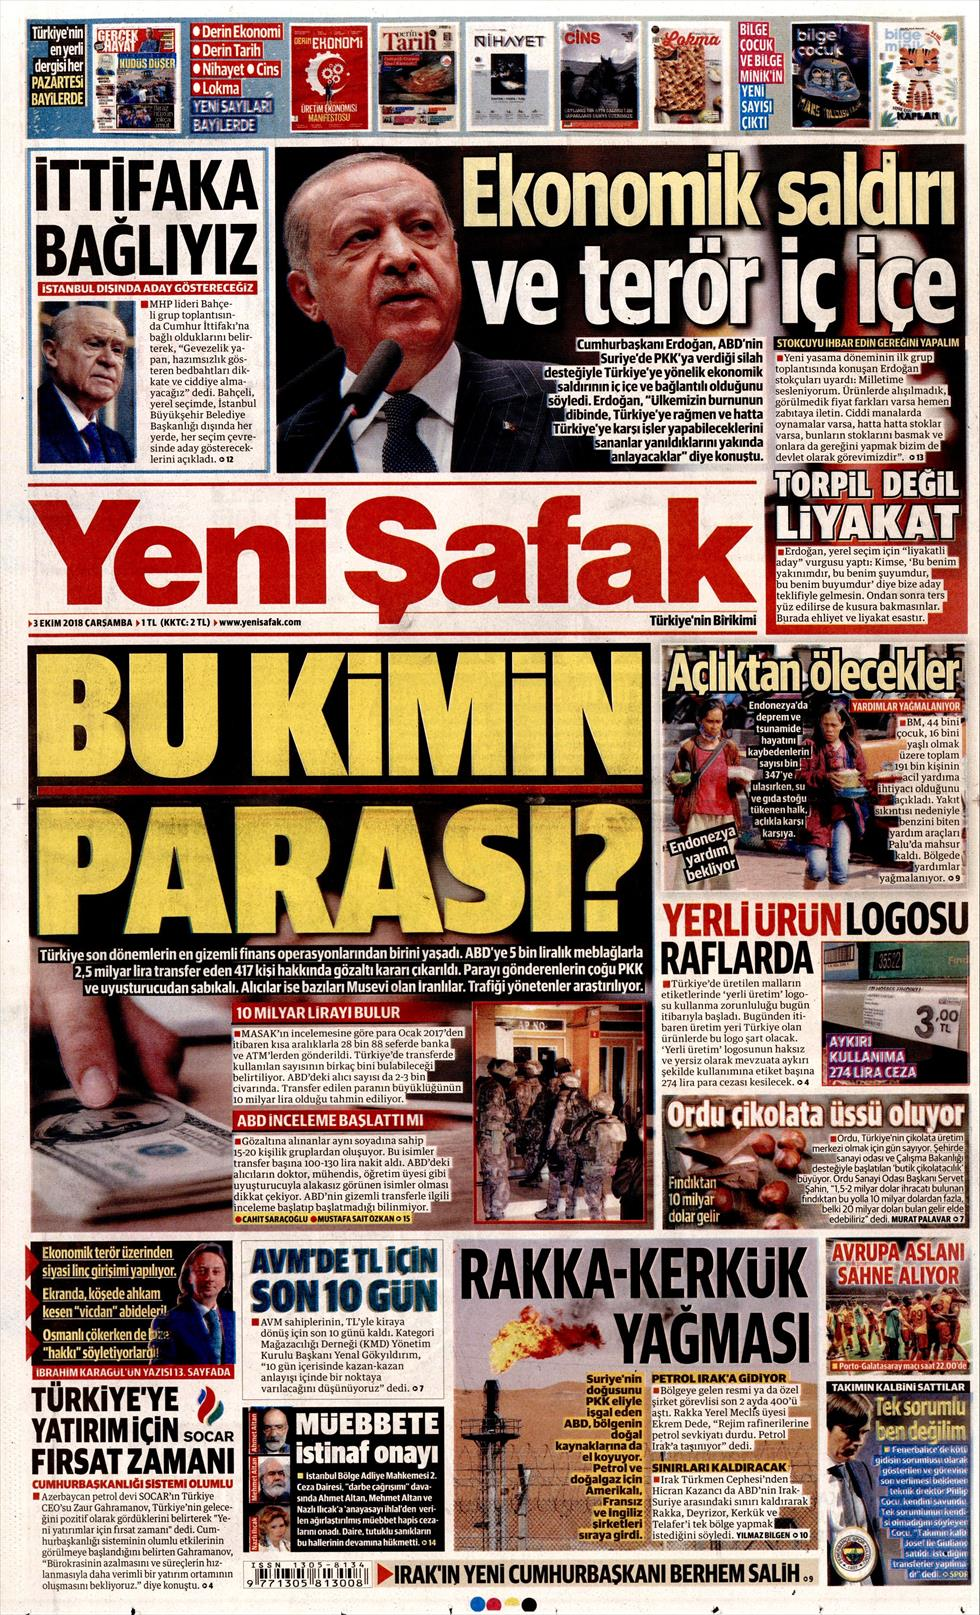 /data/newspapers/yeni-safak.jpg